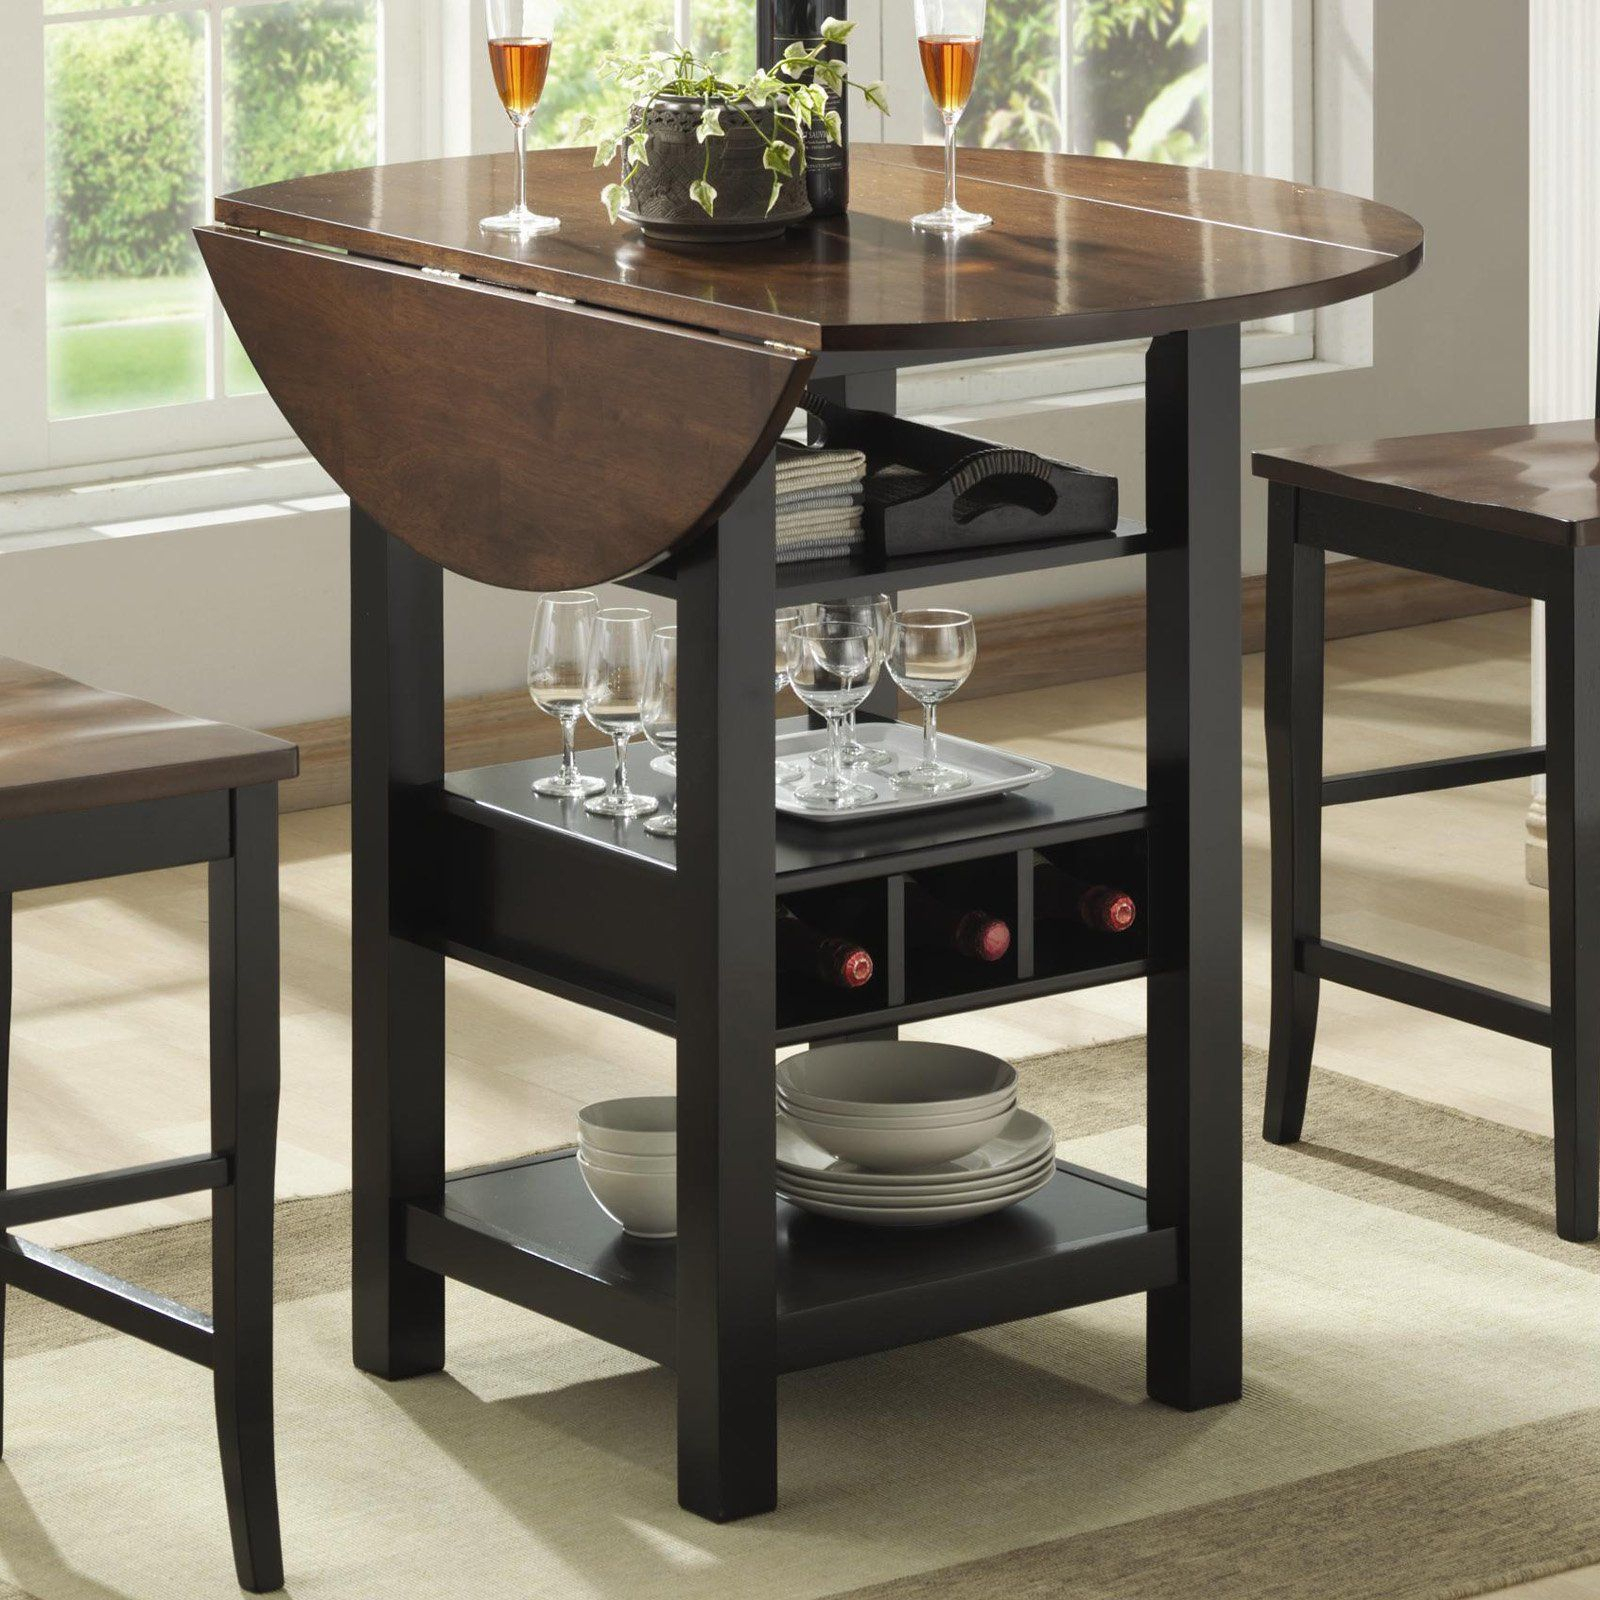 Ridgewood Counter Height Drop Leaf Dining Table With Storage With Regard To 2018 Black Shayne Drop Leaf Kitchen Tables (View 8 of 25)